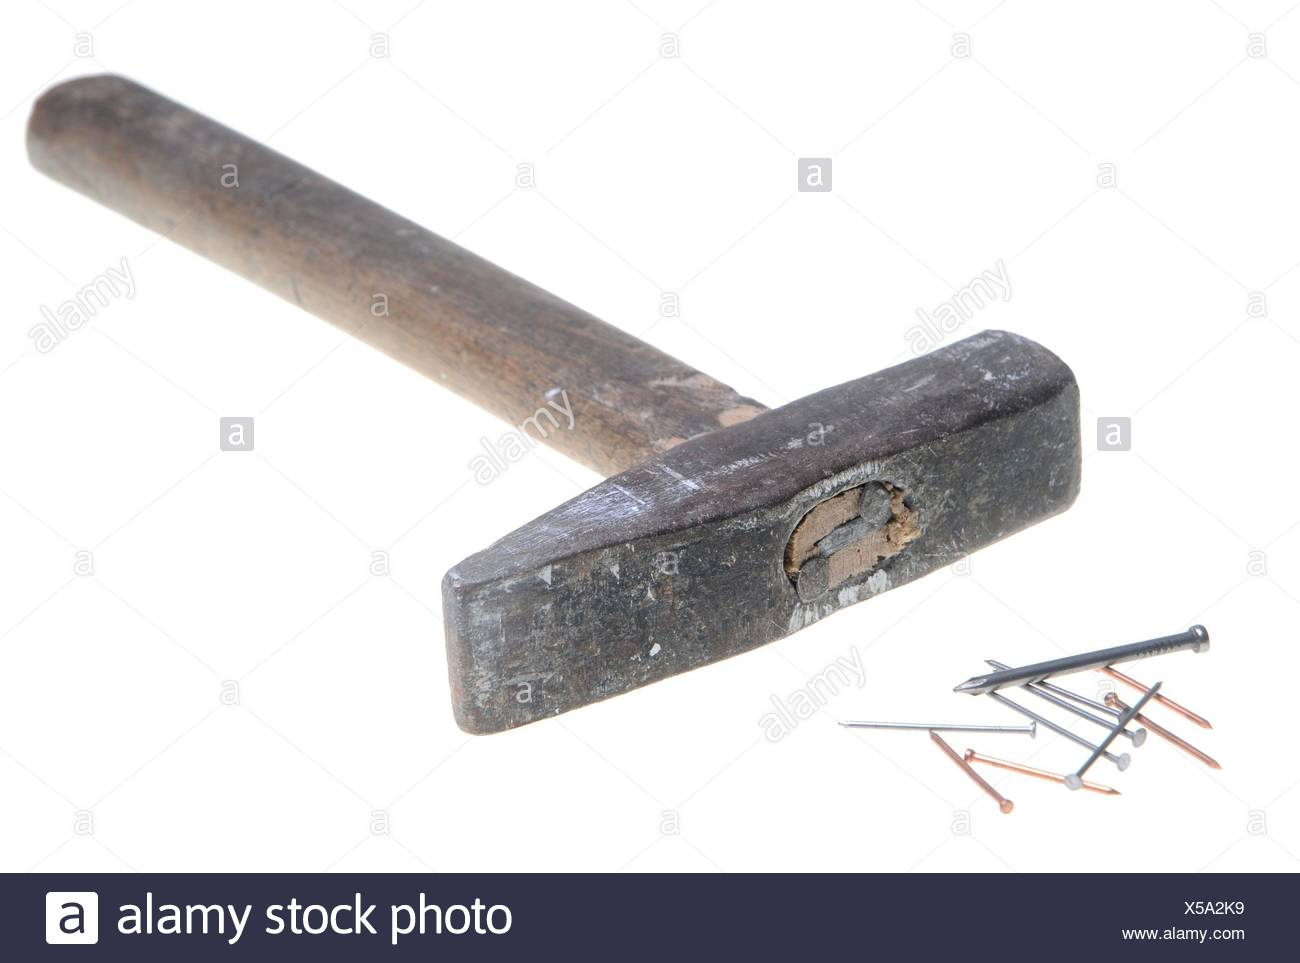 Old hammer - Stock Image